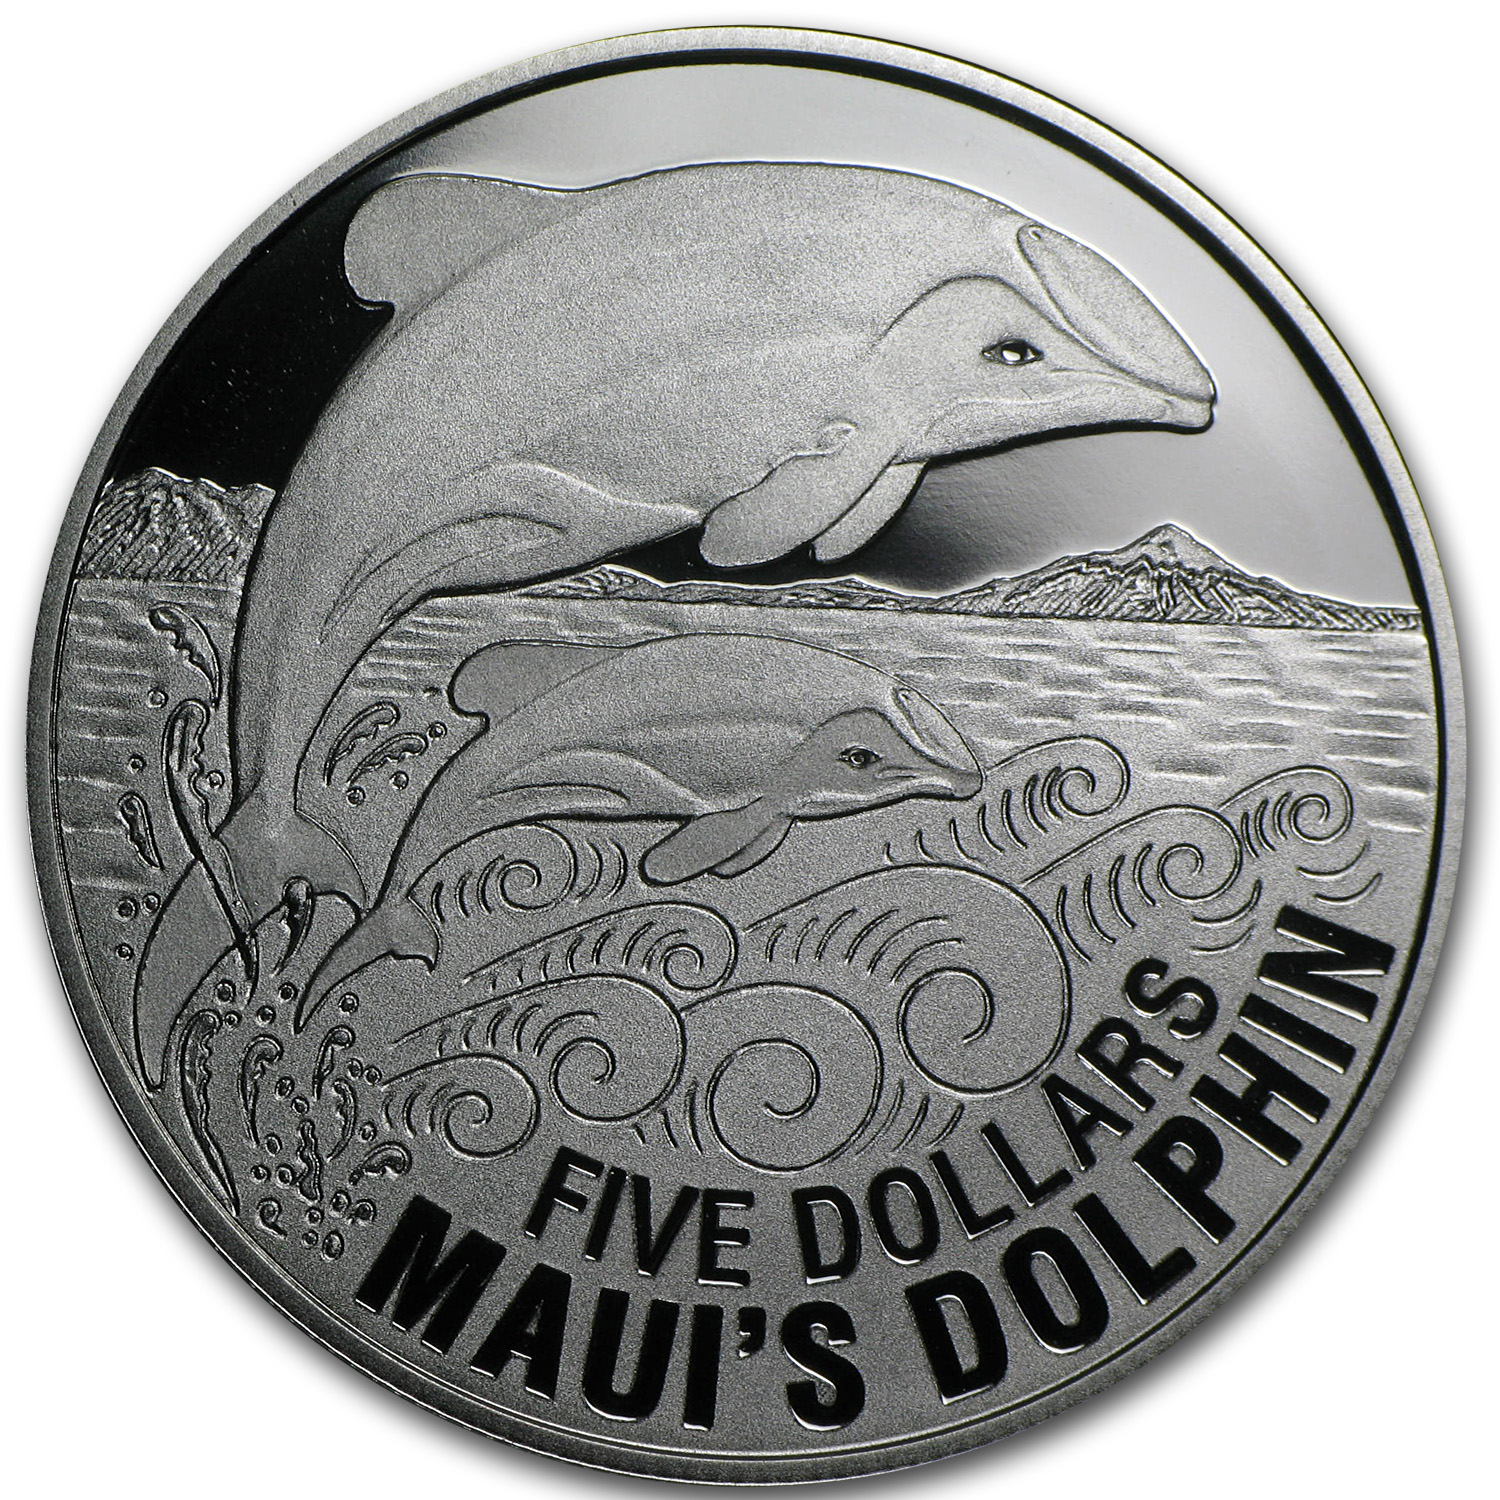 2010 New Zealand 1 oz Silver $5 Maui's Dolphin Proof